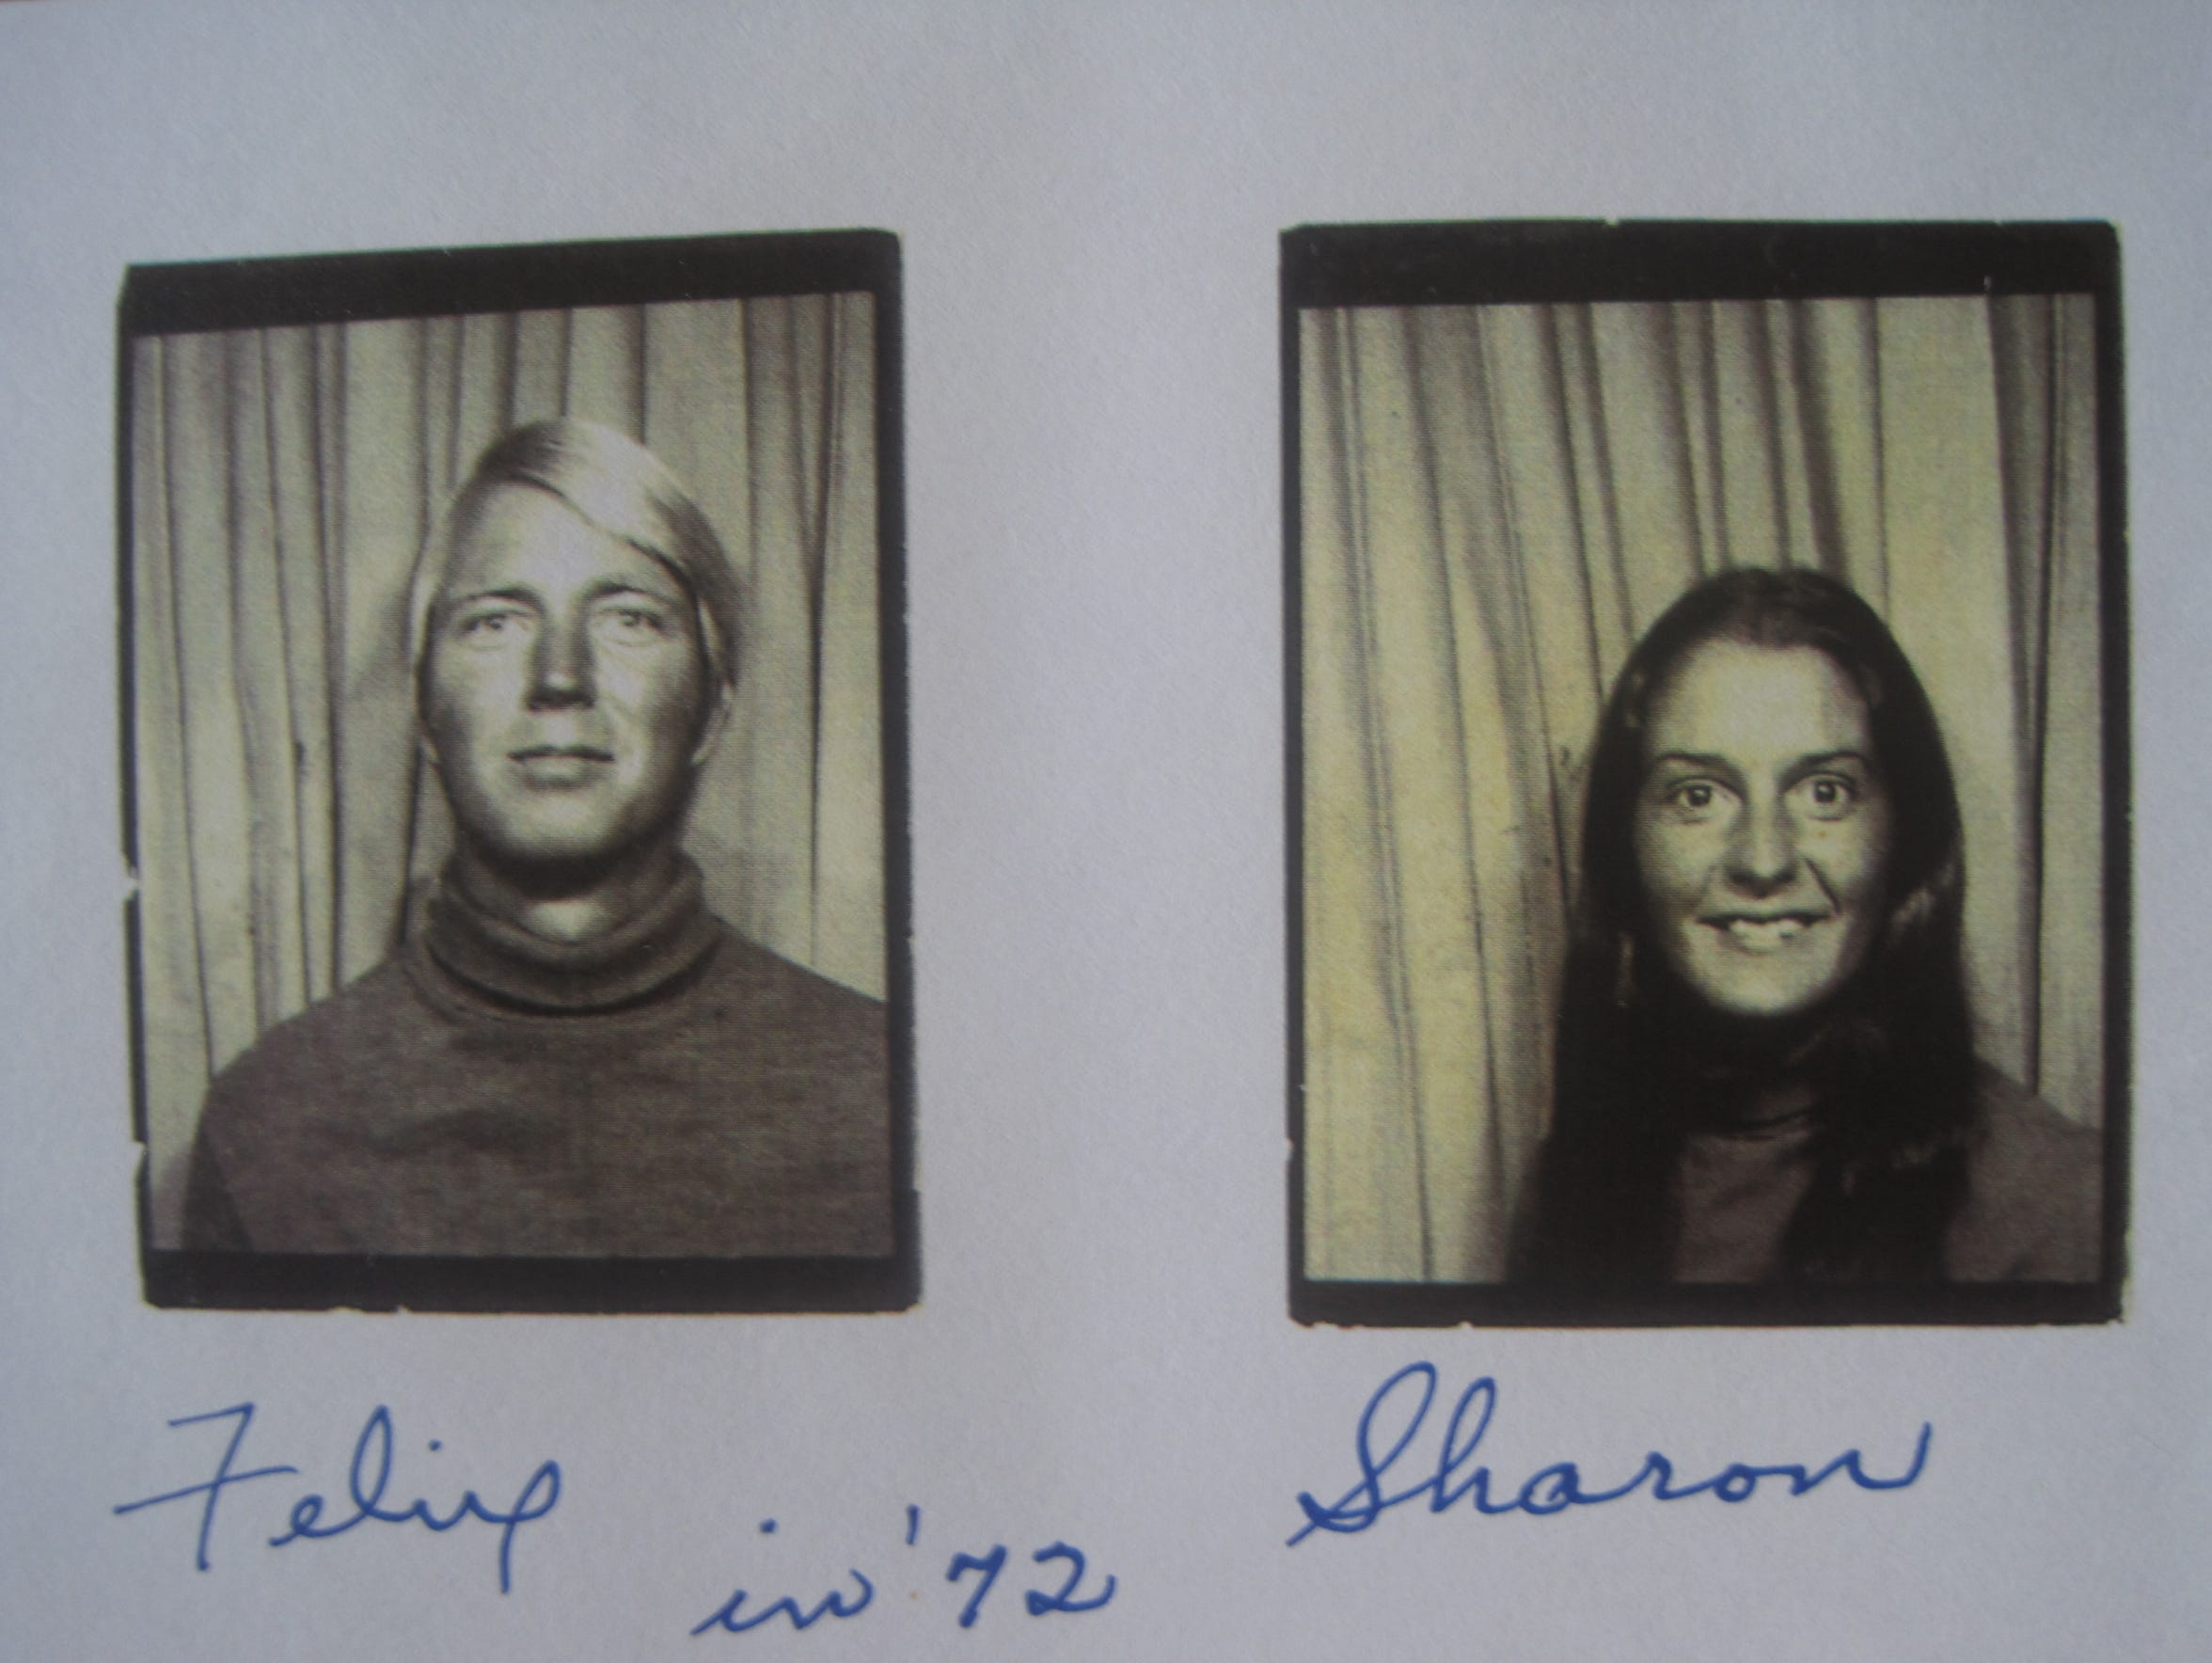 Photographs of Felix Vail and Sharon Hensley in 1972